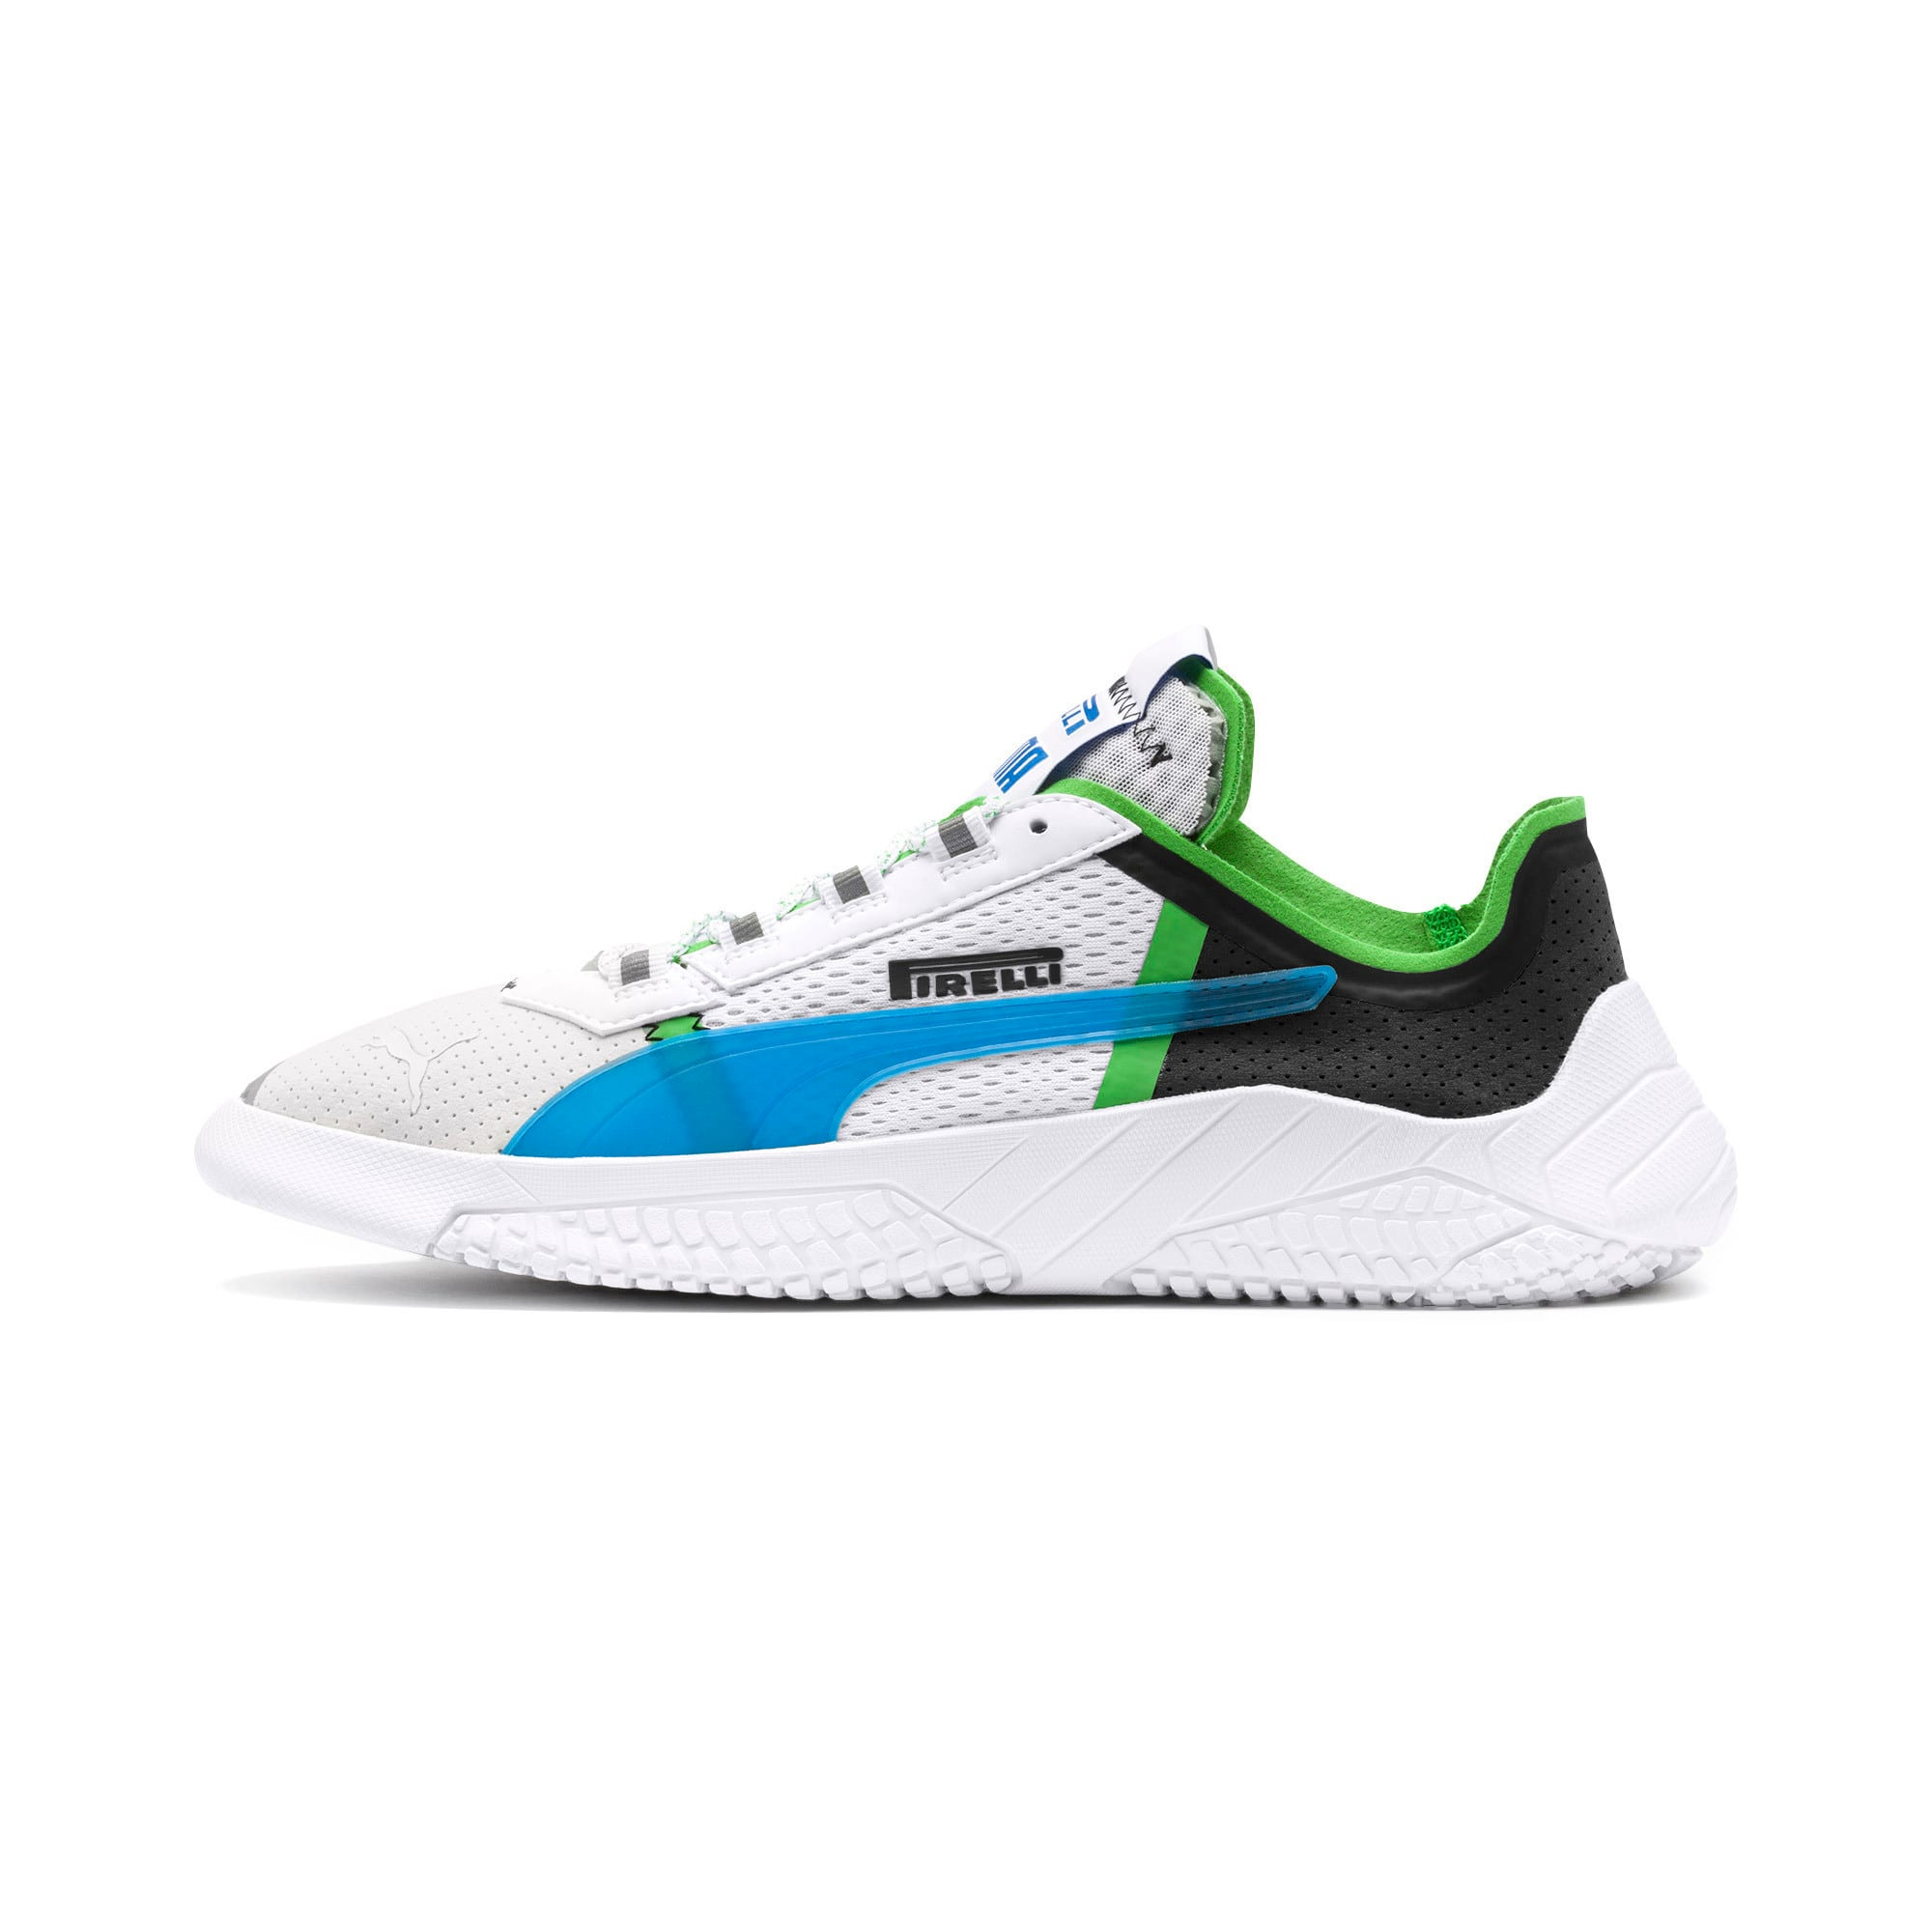 Thumbnail 1 of Replicat-X Pirelli Motorsport Shoes, White-Black-Classic Green, medium